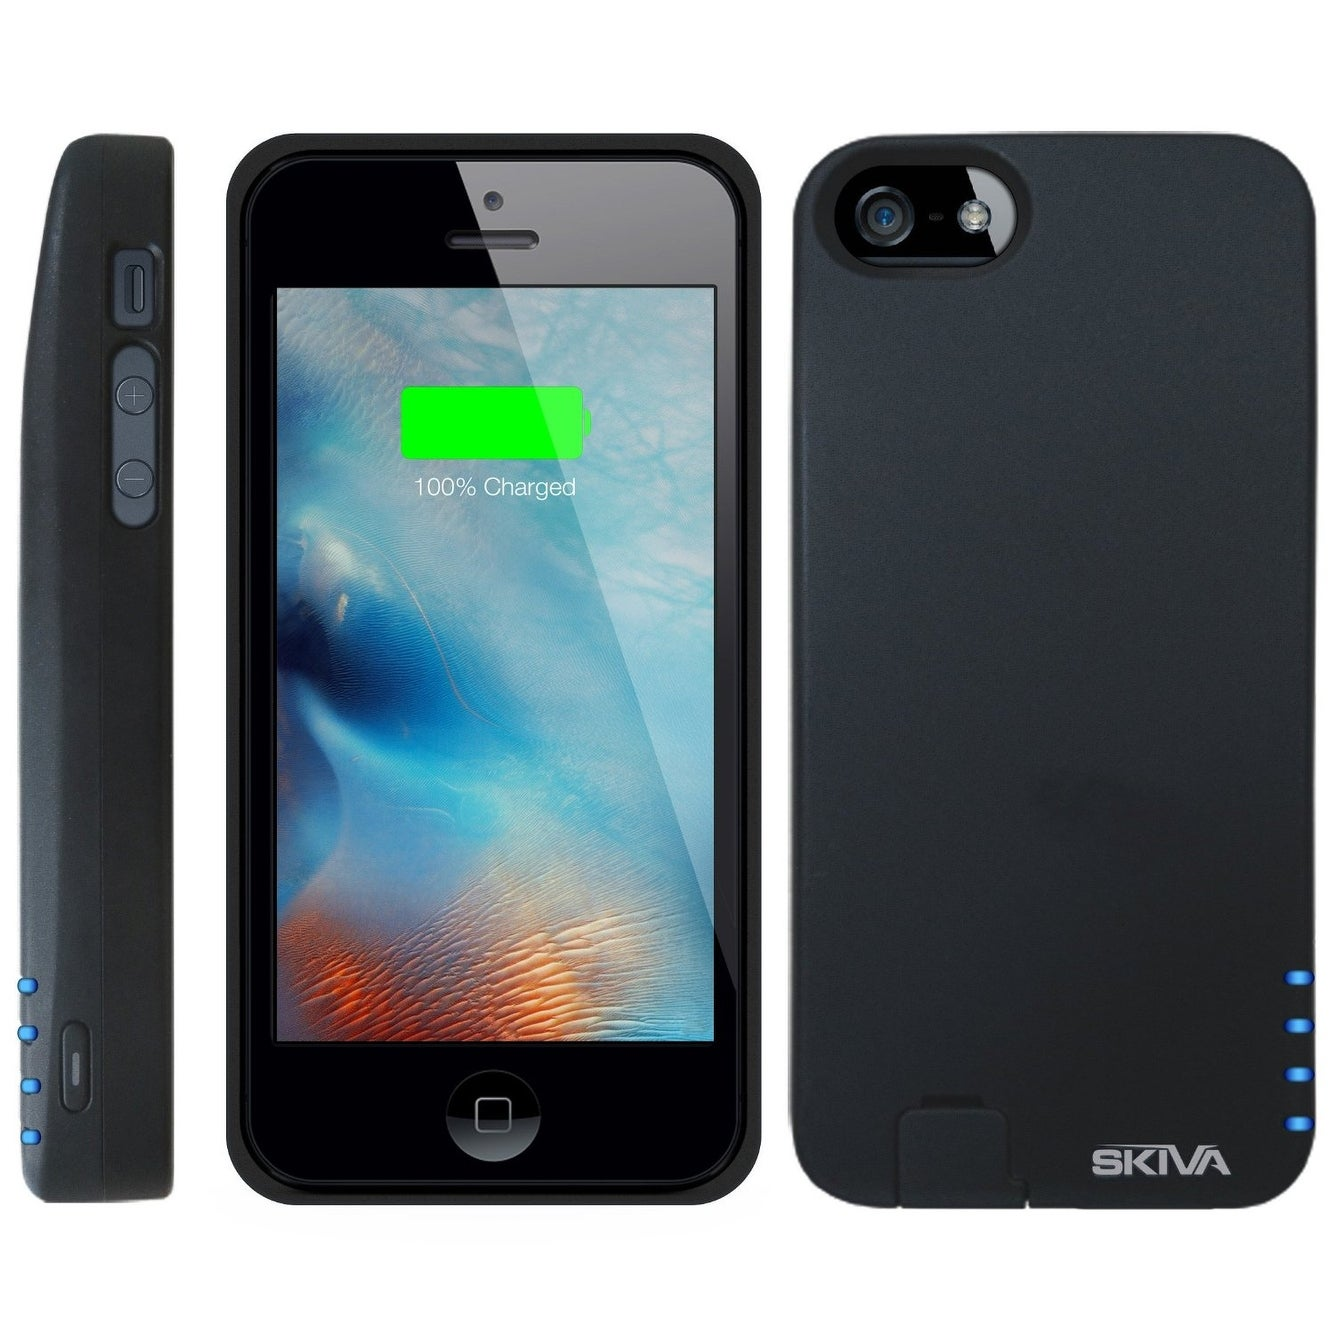 size 40 f2022 b1764 Skiva PowerFlow 2000mAh iPhone SE / 5s / 5 Protective Battery Case External  Rechargeable Portable Power Bank Pack Charger Cover